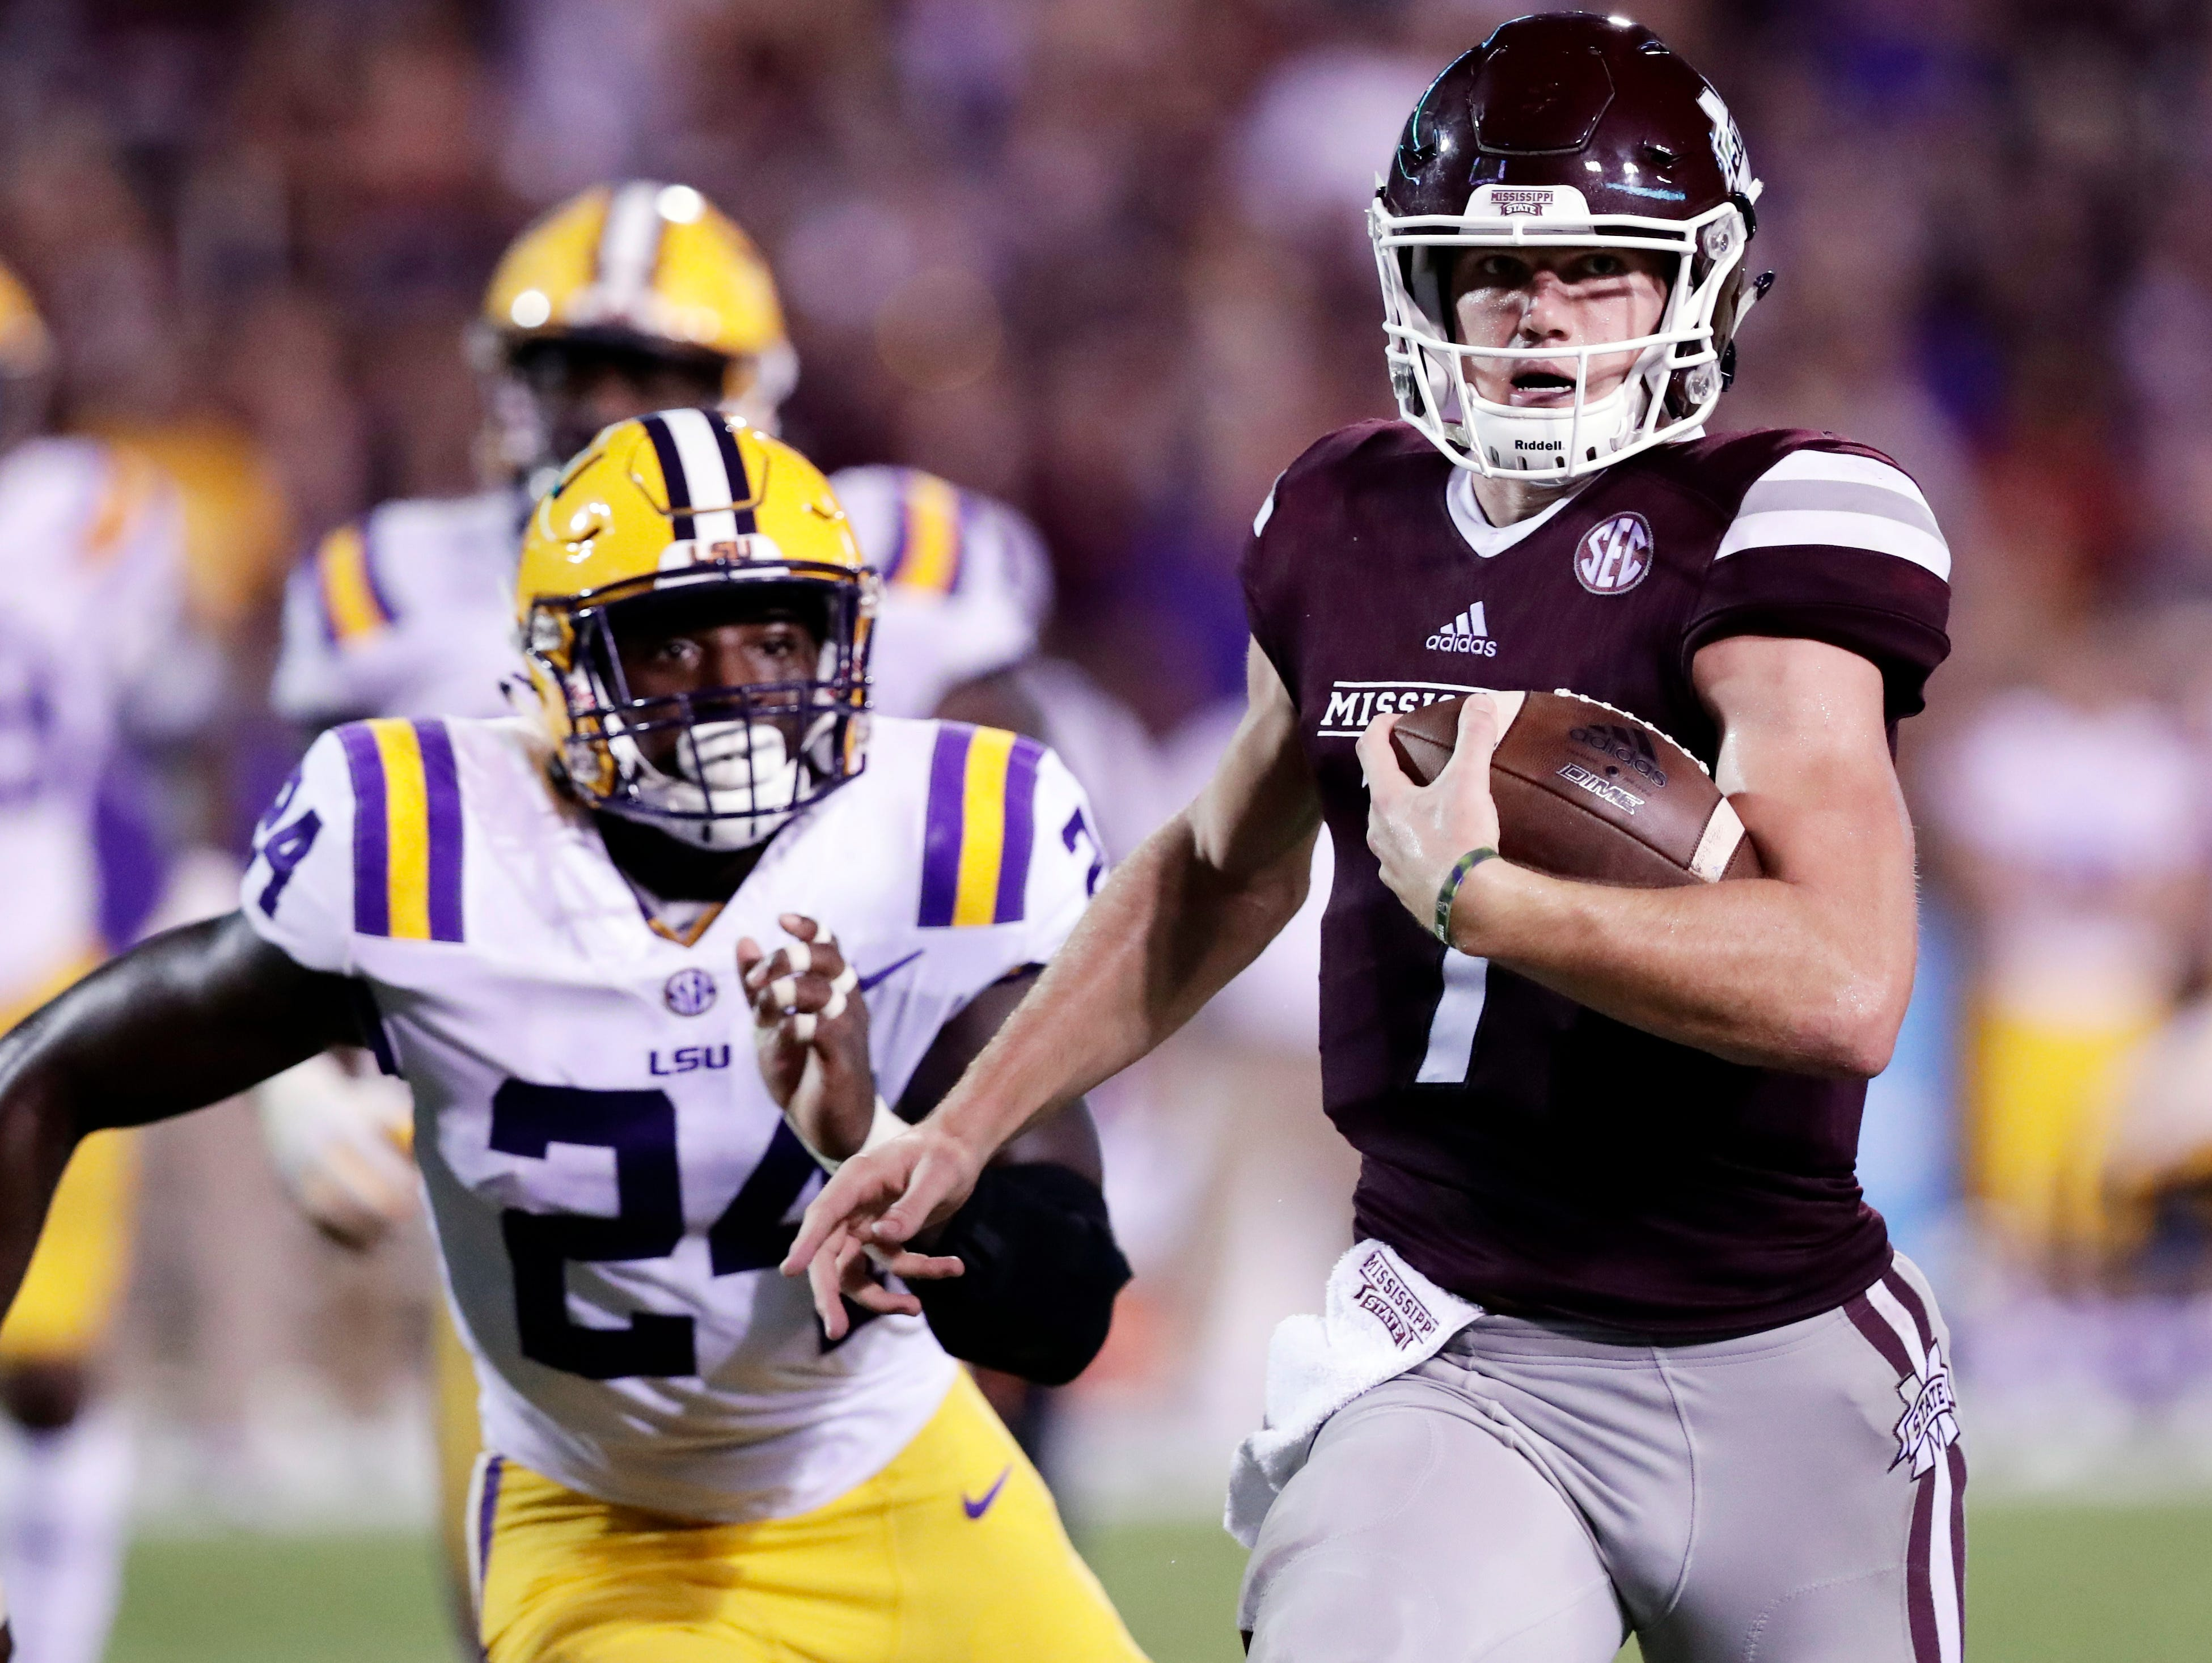 Mississippi State quarterback Nick Fitzgerald (7) sprints past LSU linebacker Tyler Taylor (24) for a first down during the second half of their NCAA college football game against LSU in Starkville, Miss., Saturday, Sept. 16, 2017. Mississippi State won 37-7. (AP Photo/Rogelio V. Solis)